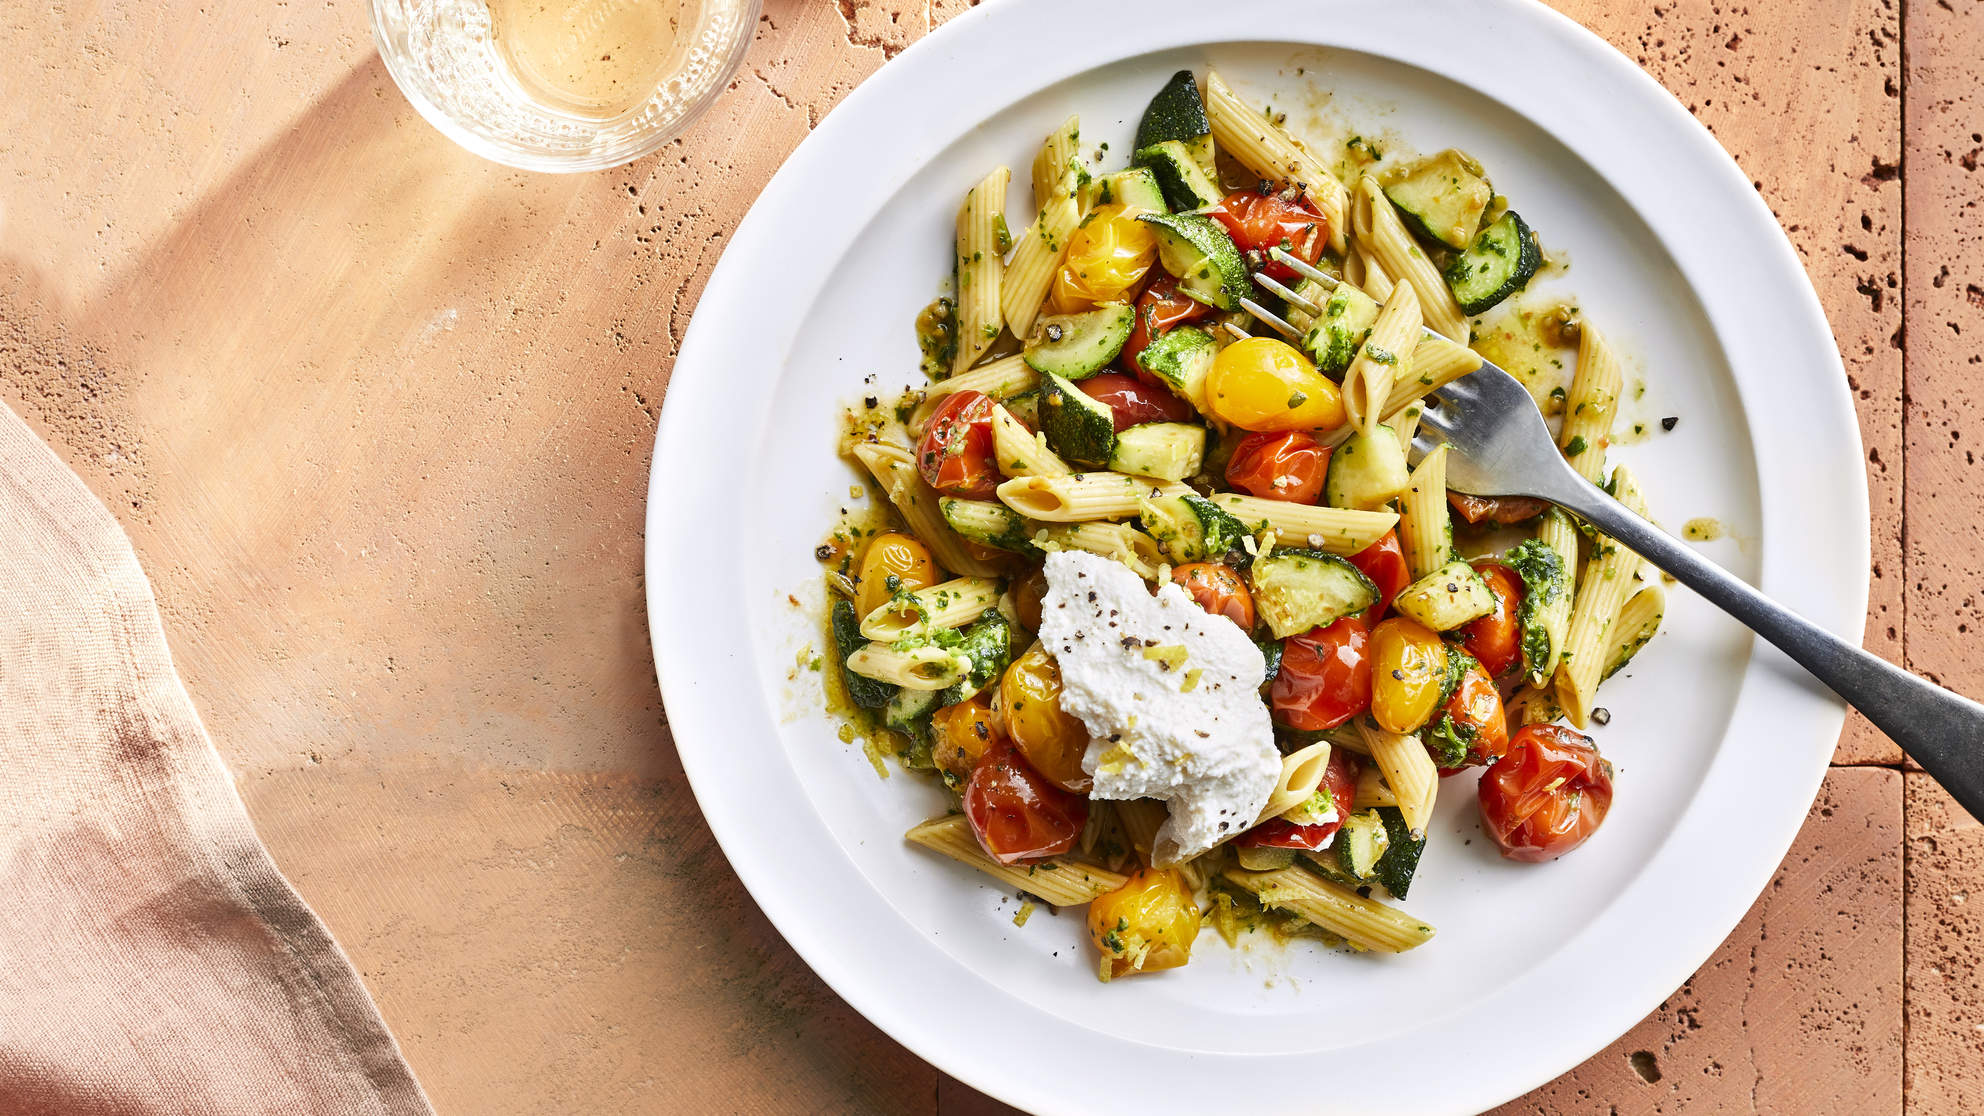 Zucchini and Pesto Pasta